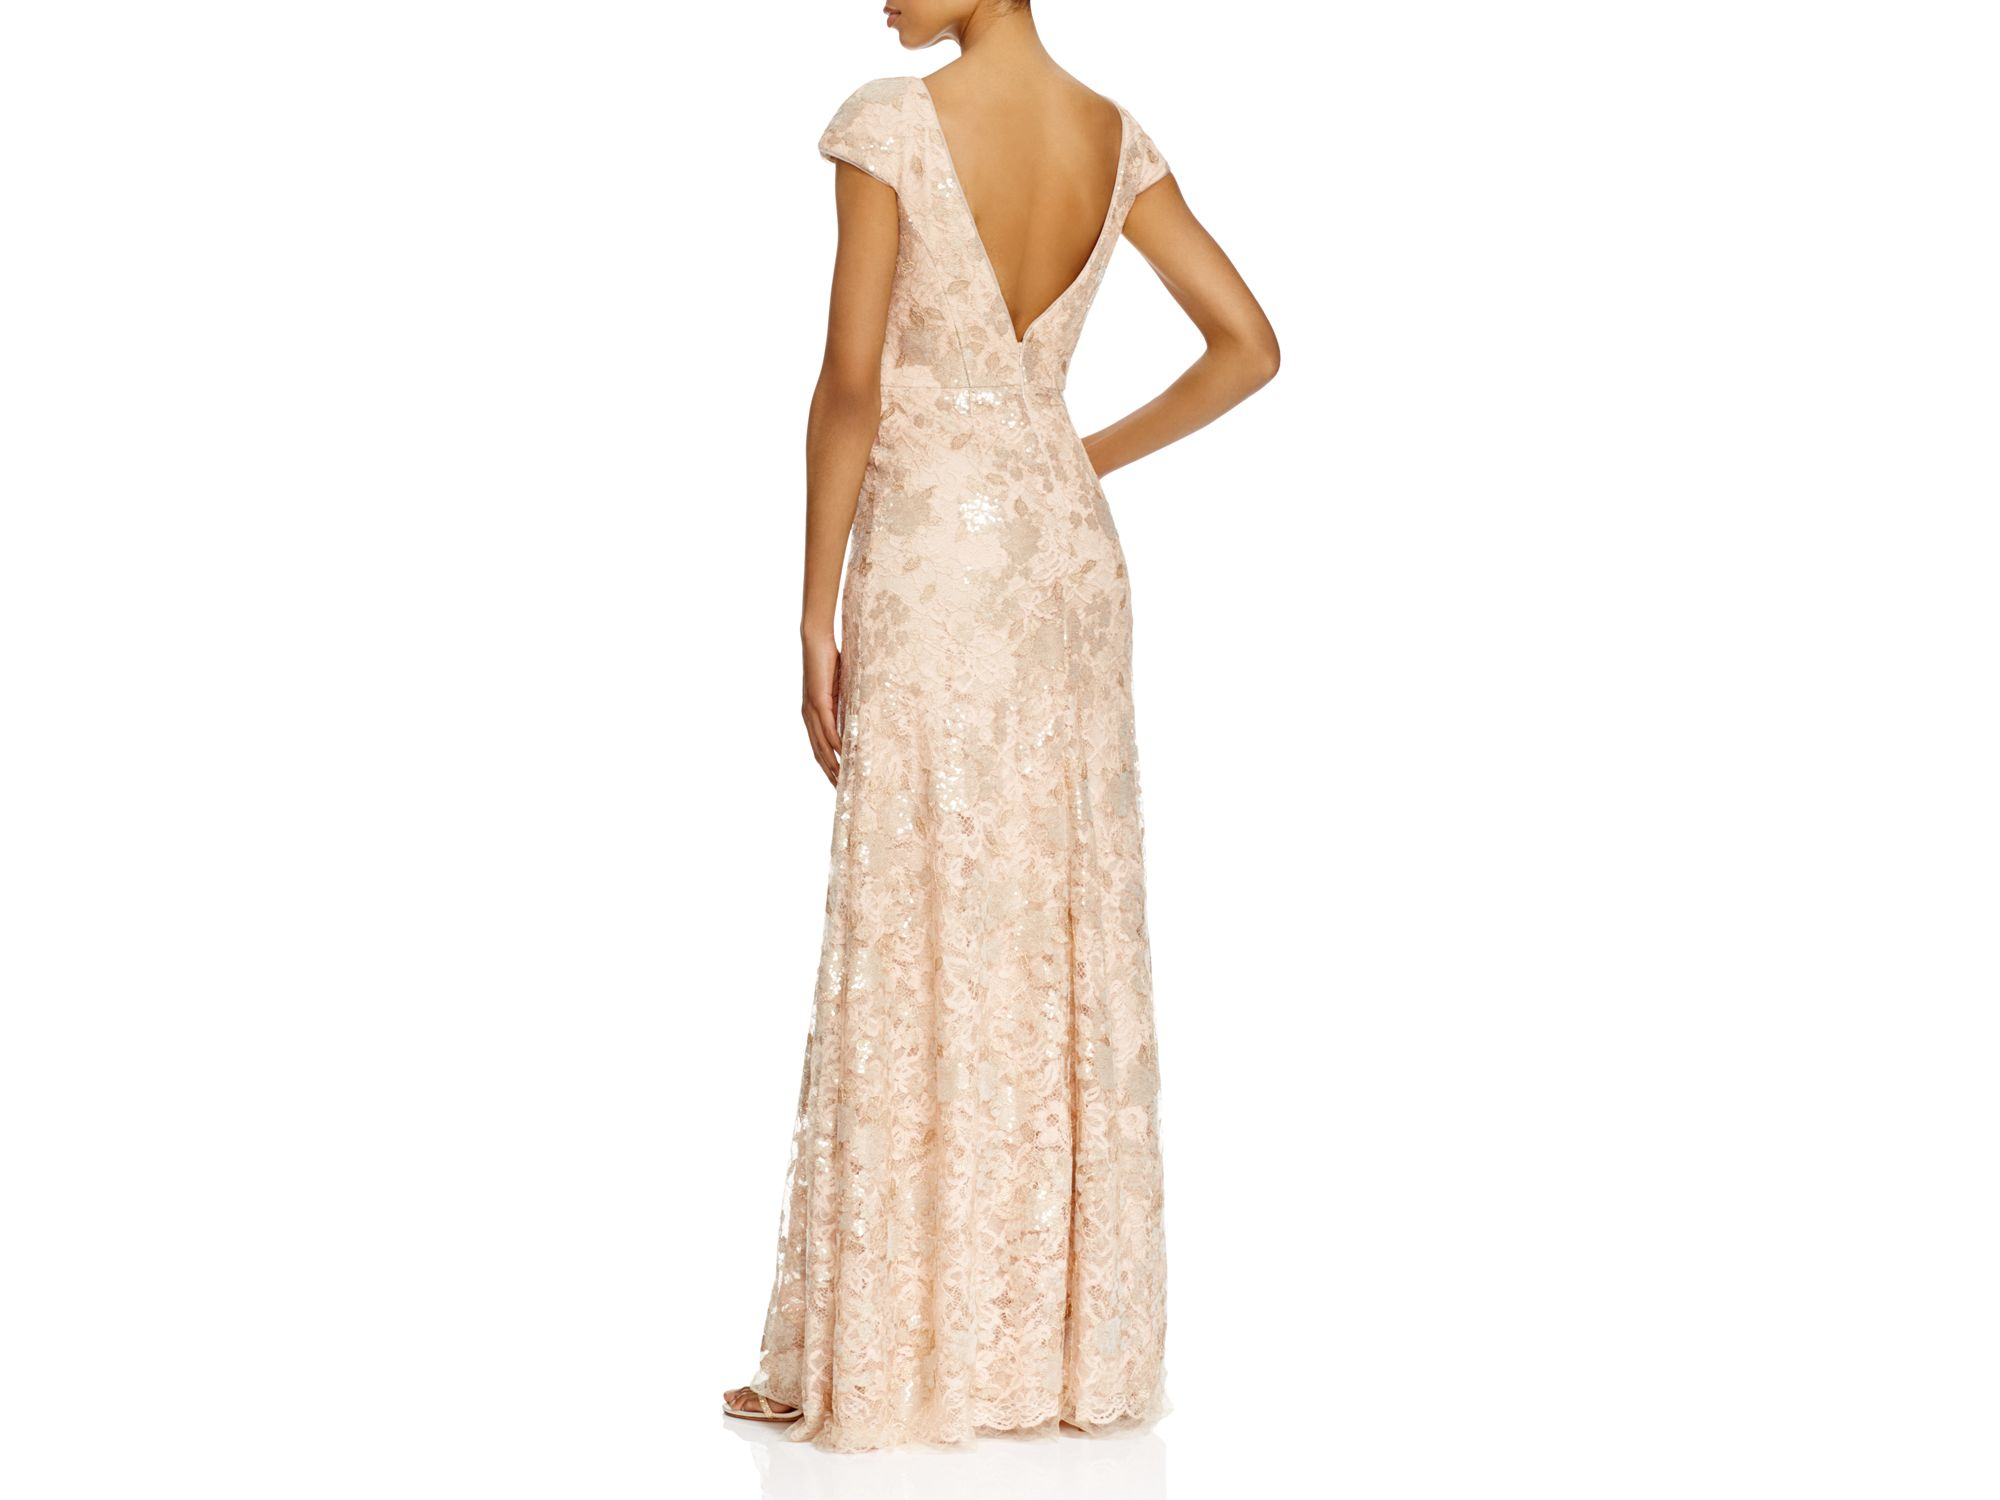 Vera wang Cap Sleeve Lace Gown in Pink